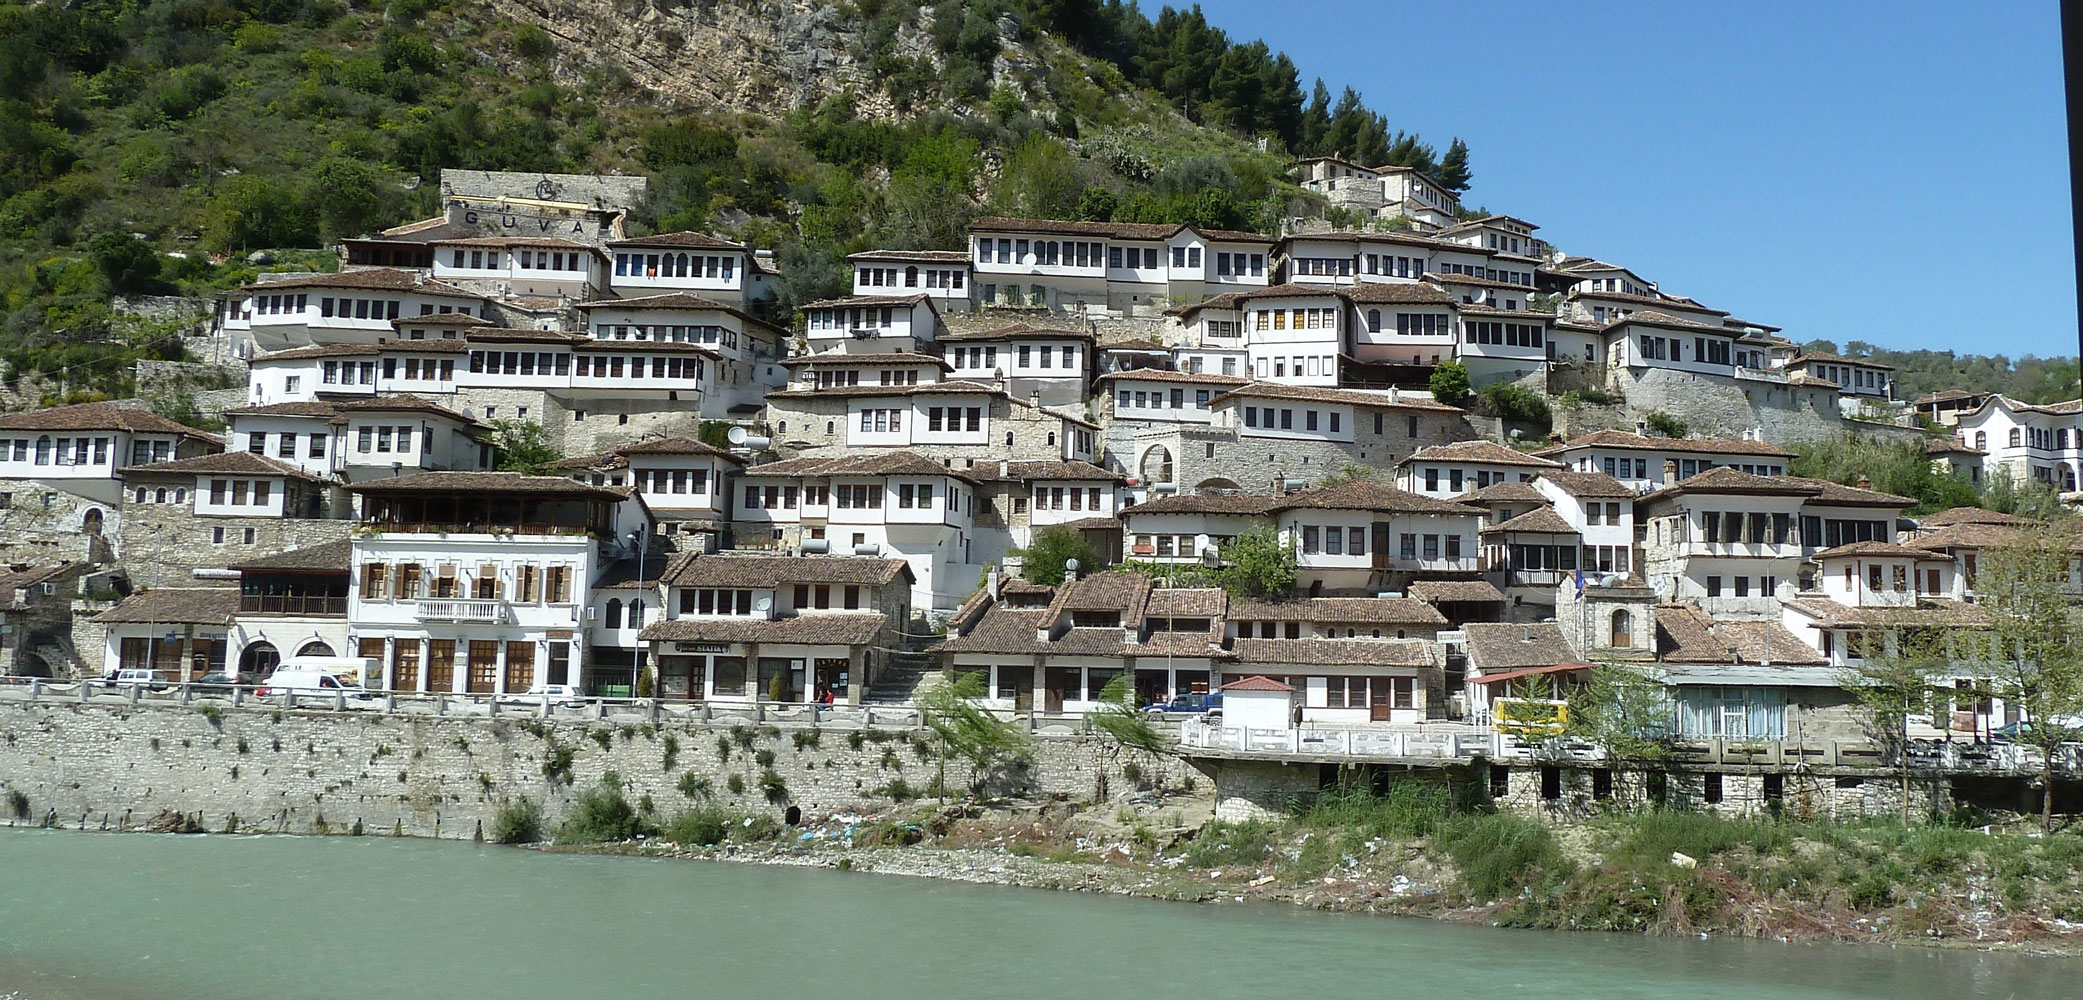 The-town-of Berat-Albania